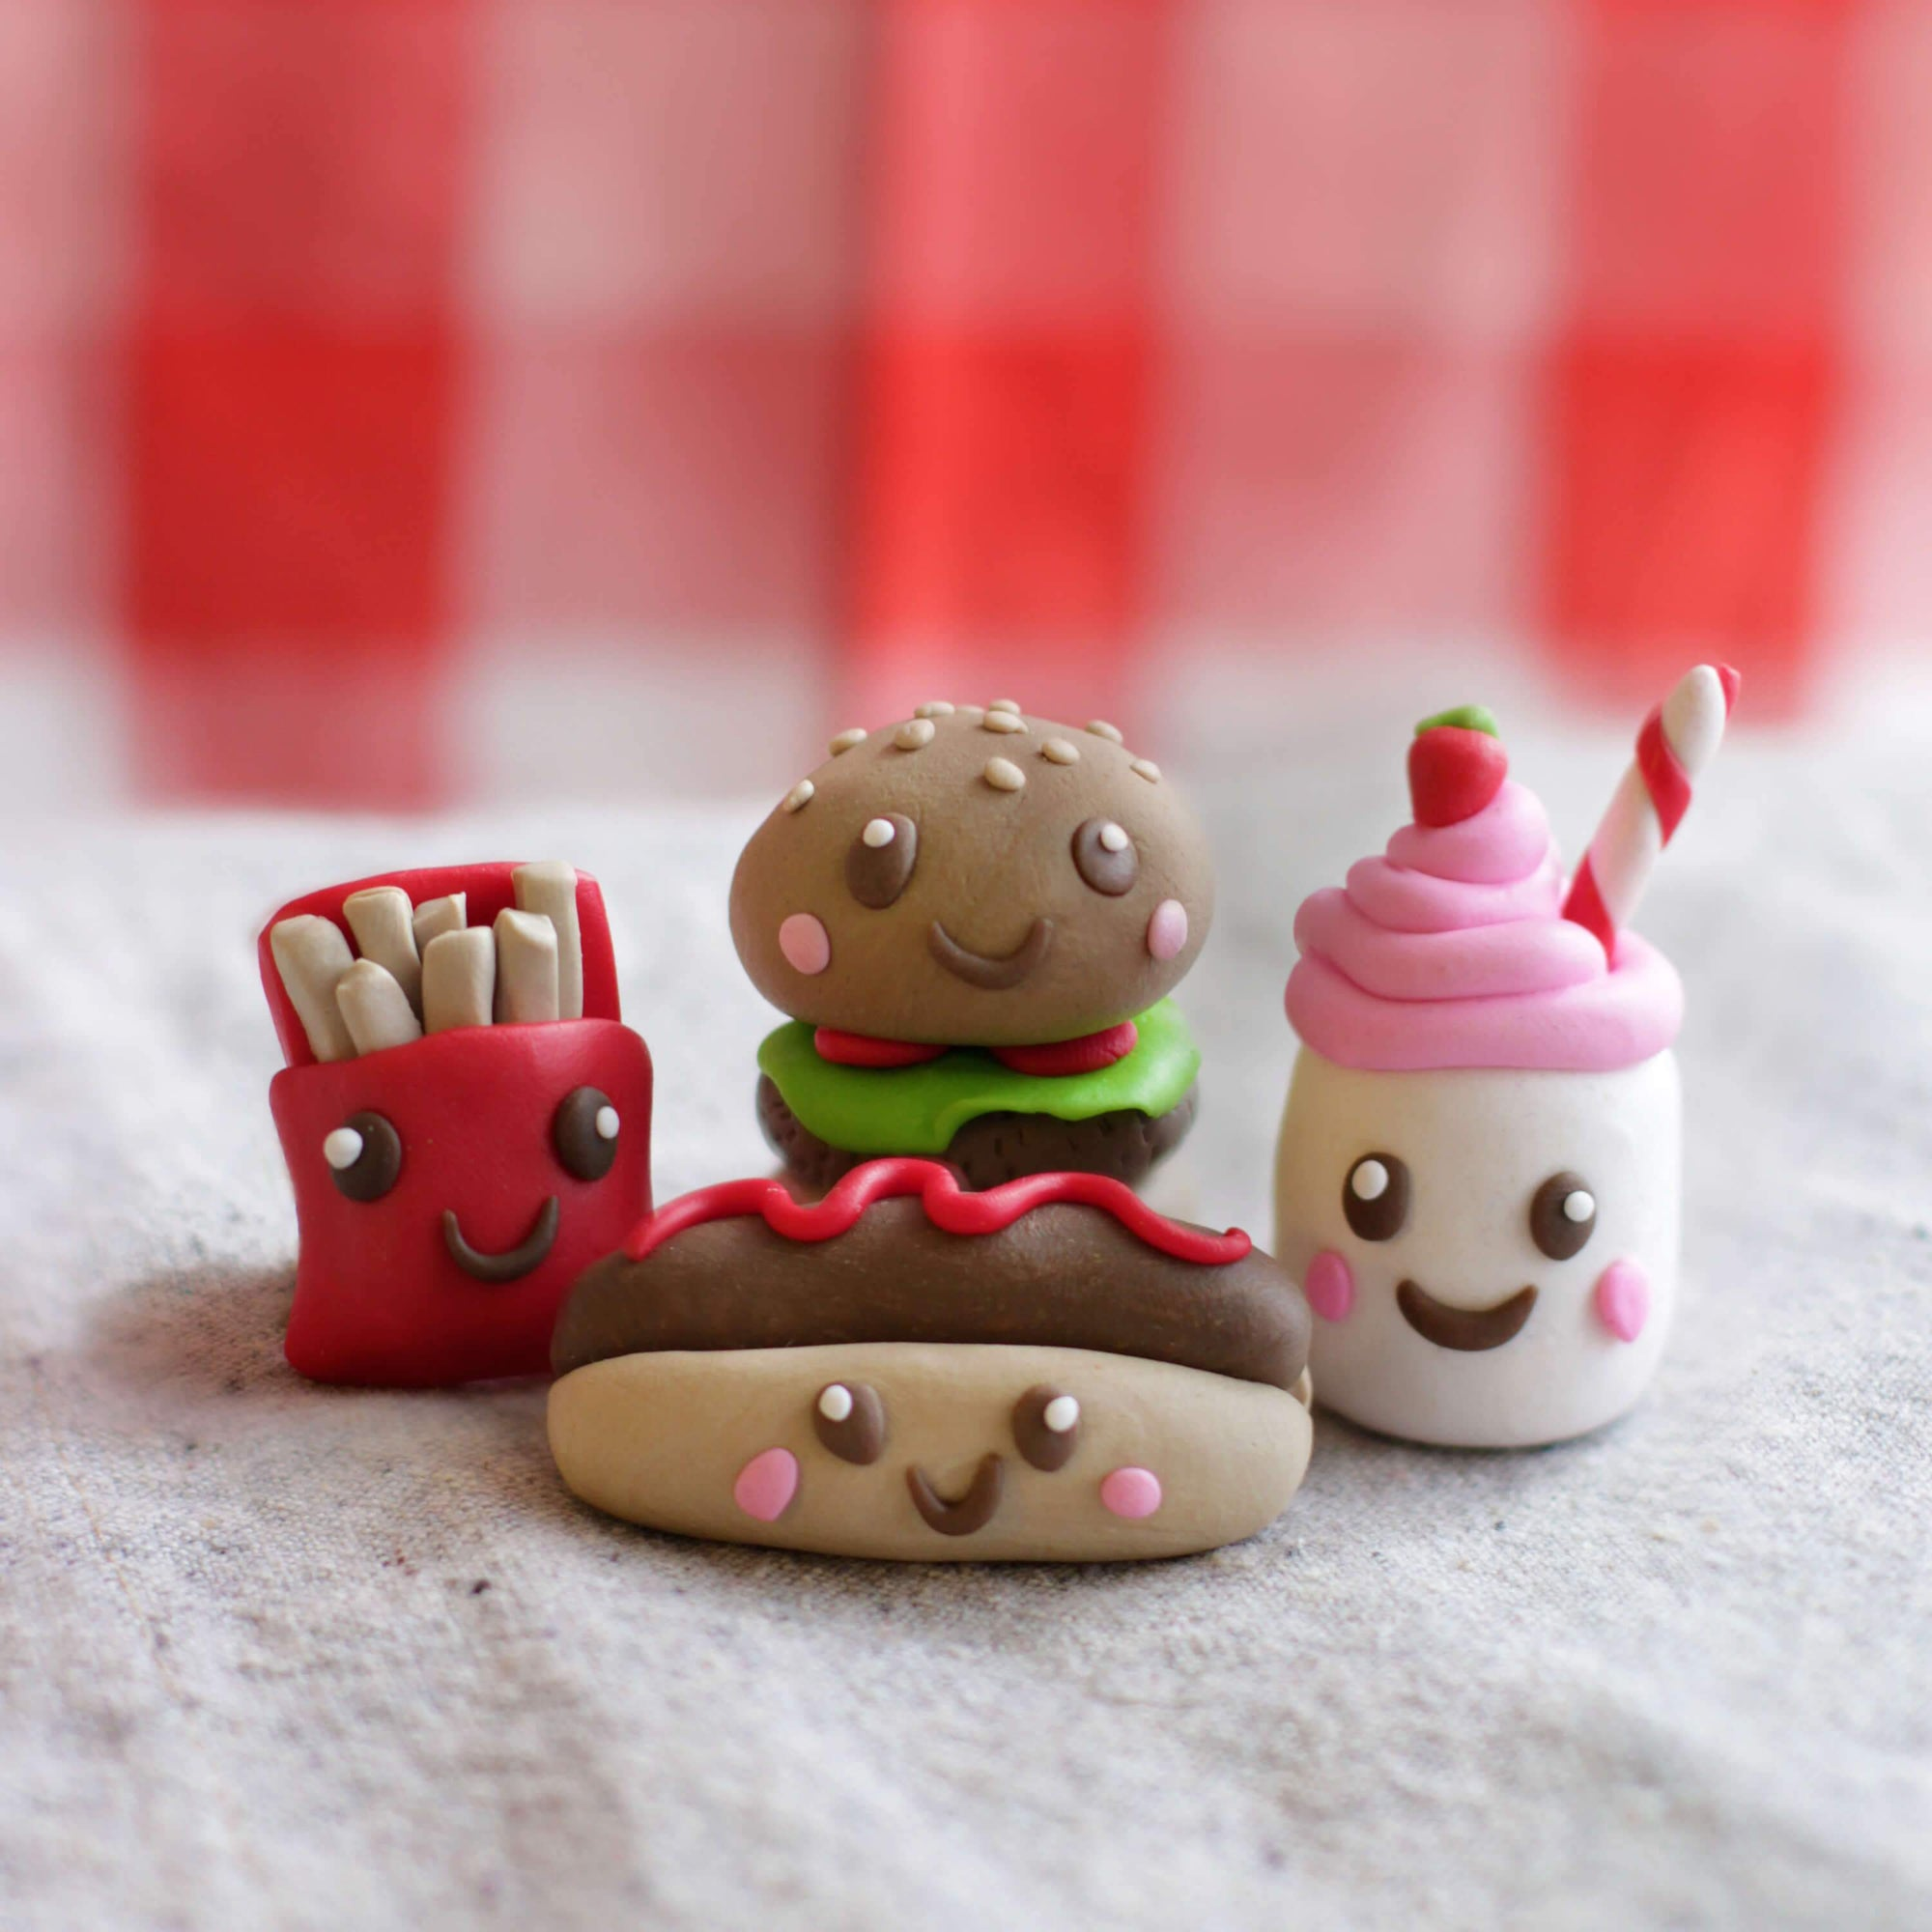 4Cats Ditto Oven-Bake Clay Foodie Burger Kit